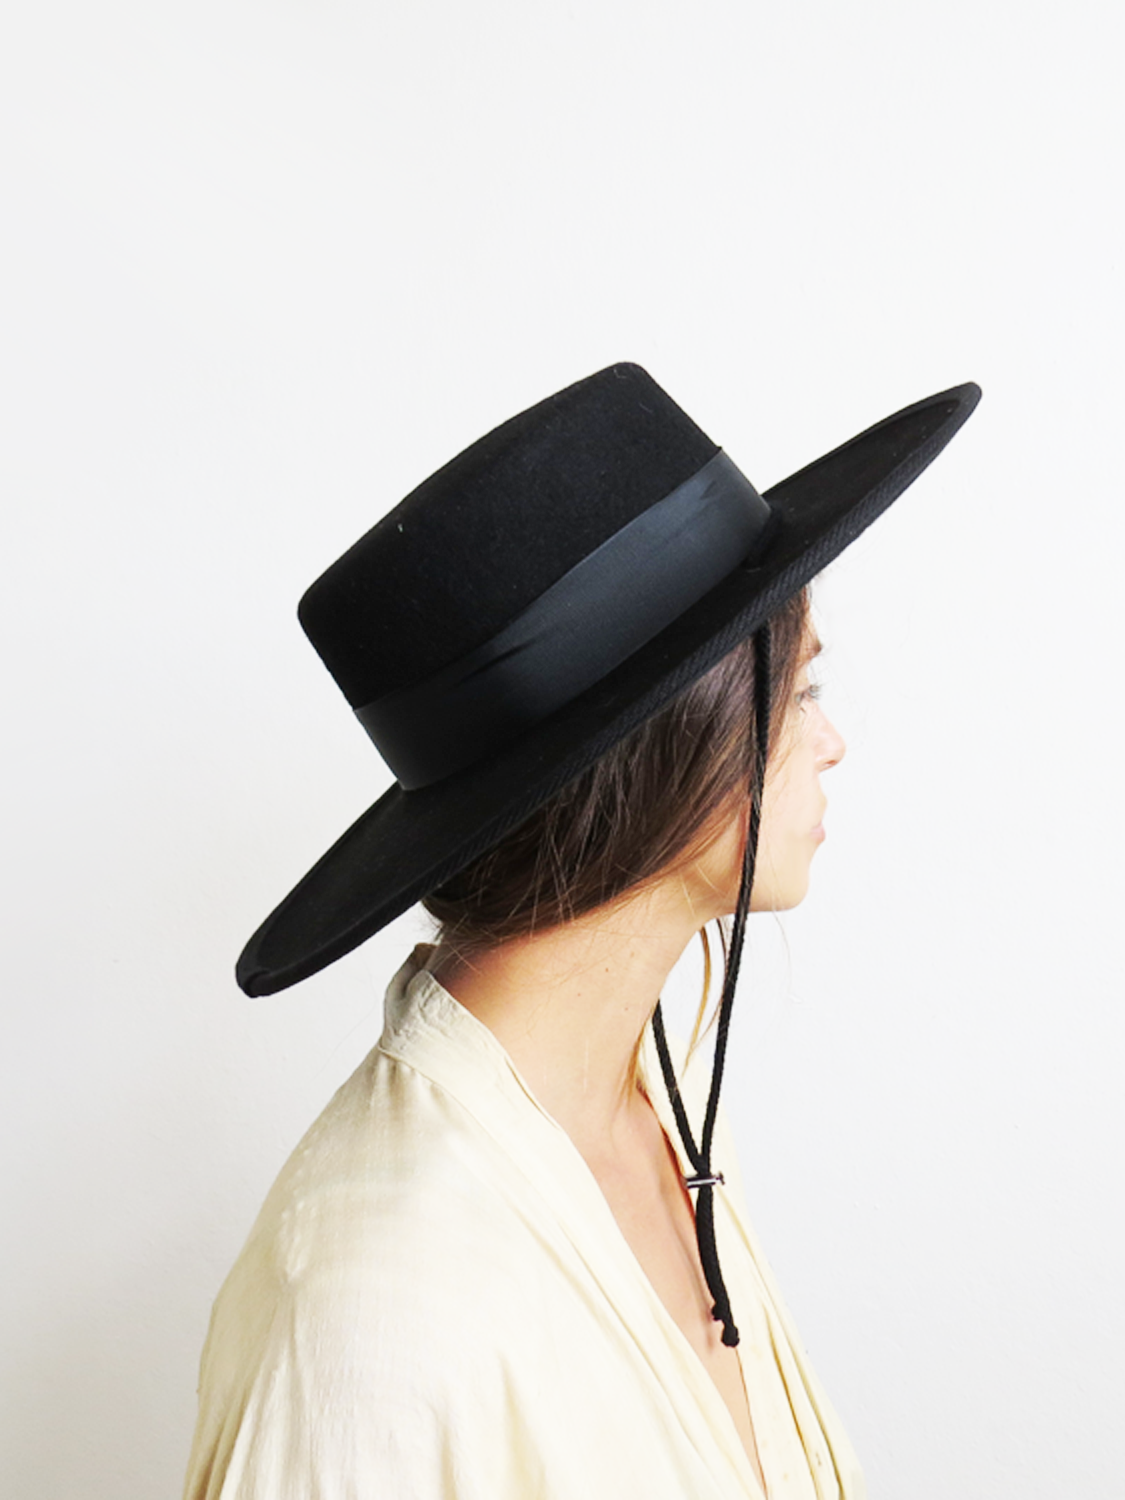 ac26a2b05 Black Bolero Hat // Spanish Flat Brim Hat #barnabyjack SOLD OUT ...